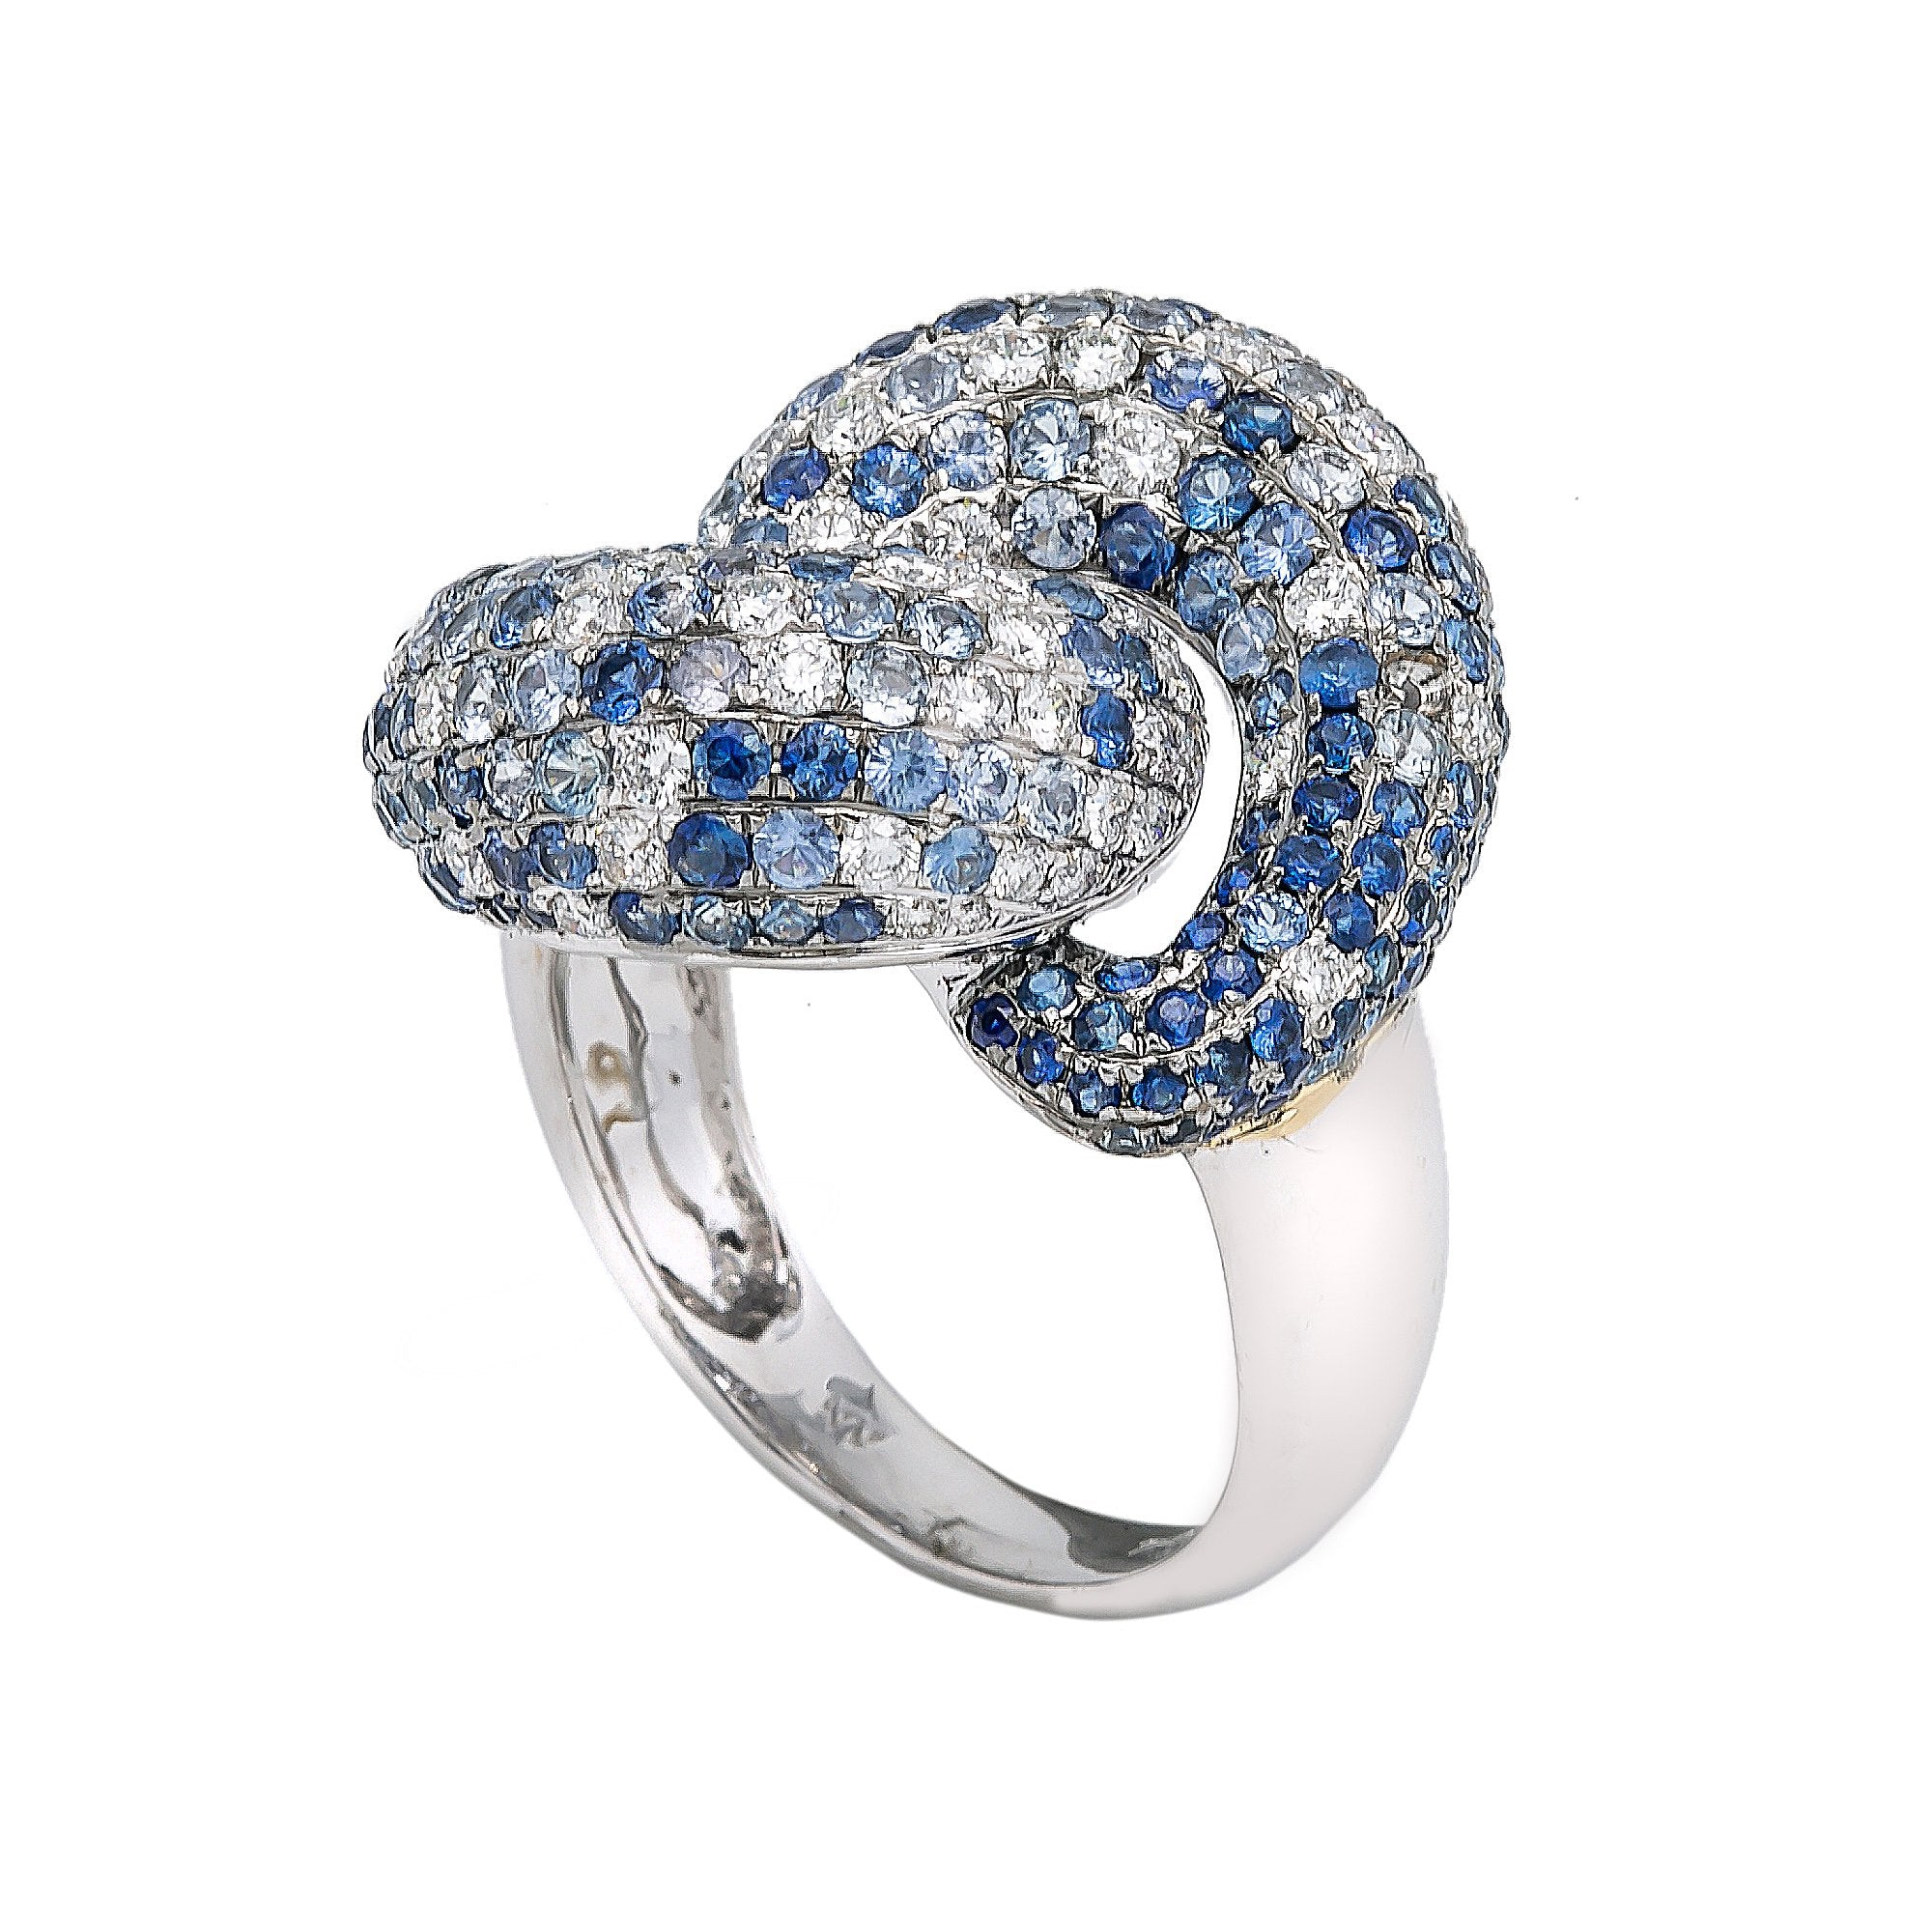 LADIES 18K WHITE GOLD HAND RING WITH 1.48 CT DIAMONDS AND 4.45 CT SAPPHIRES